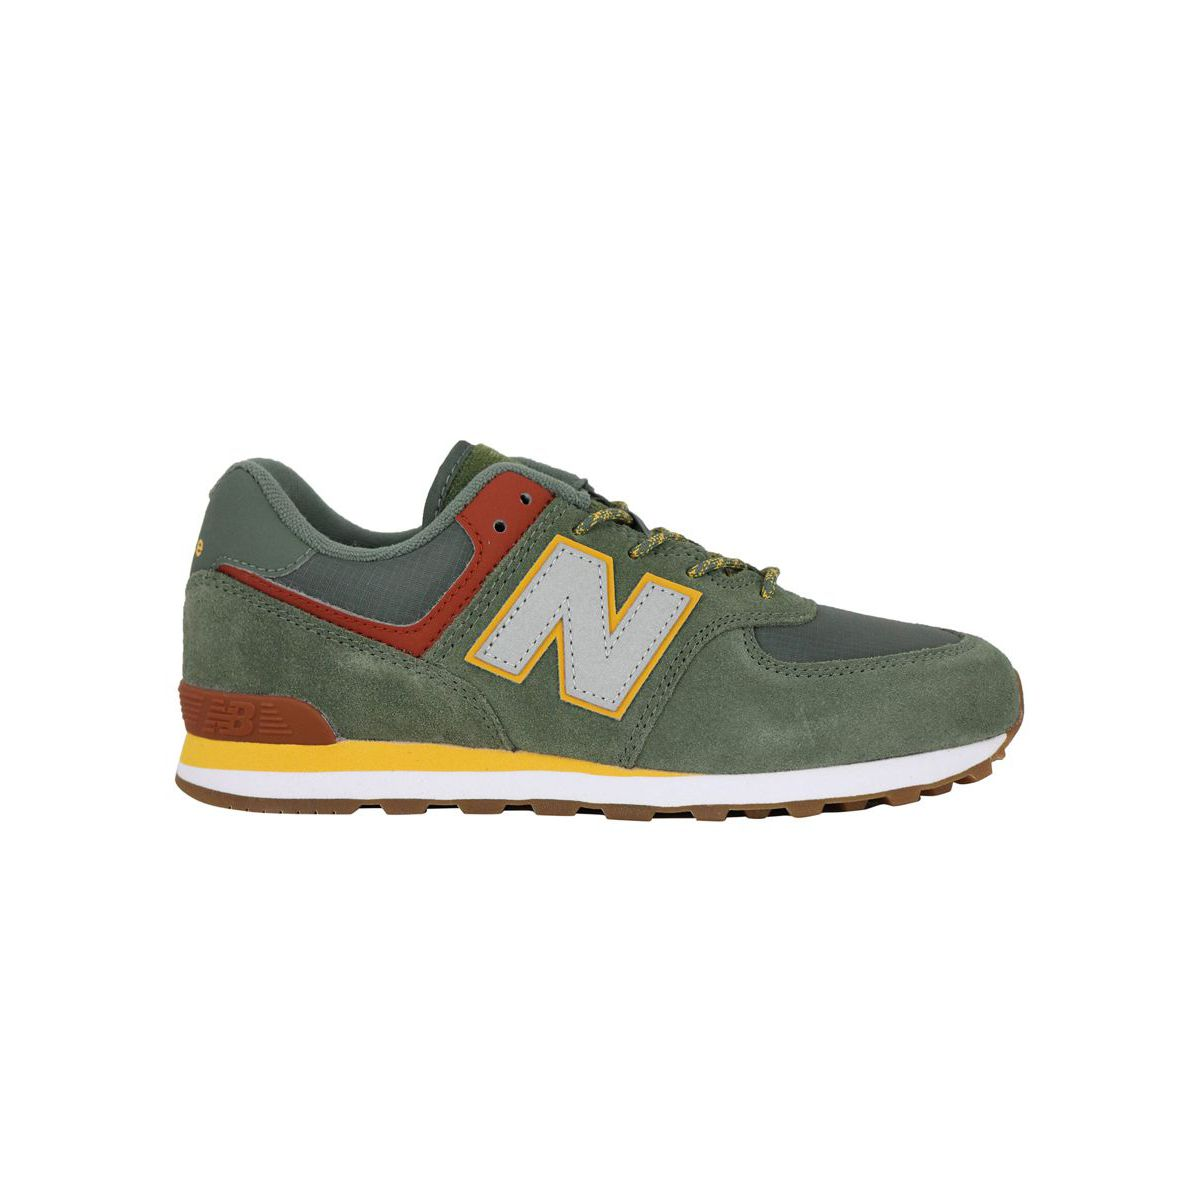 Sneakers GC574PAD Green yellow New Balance